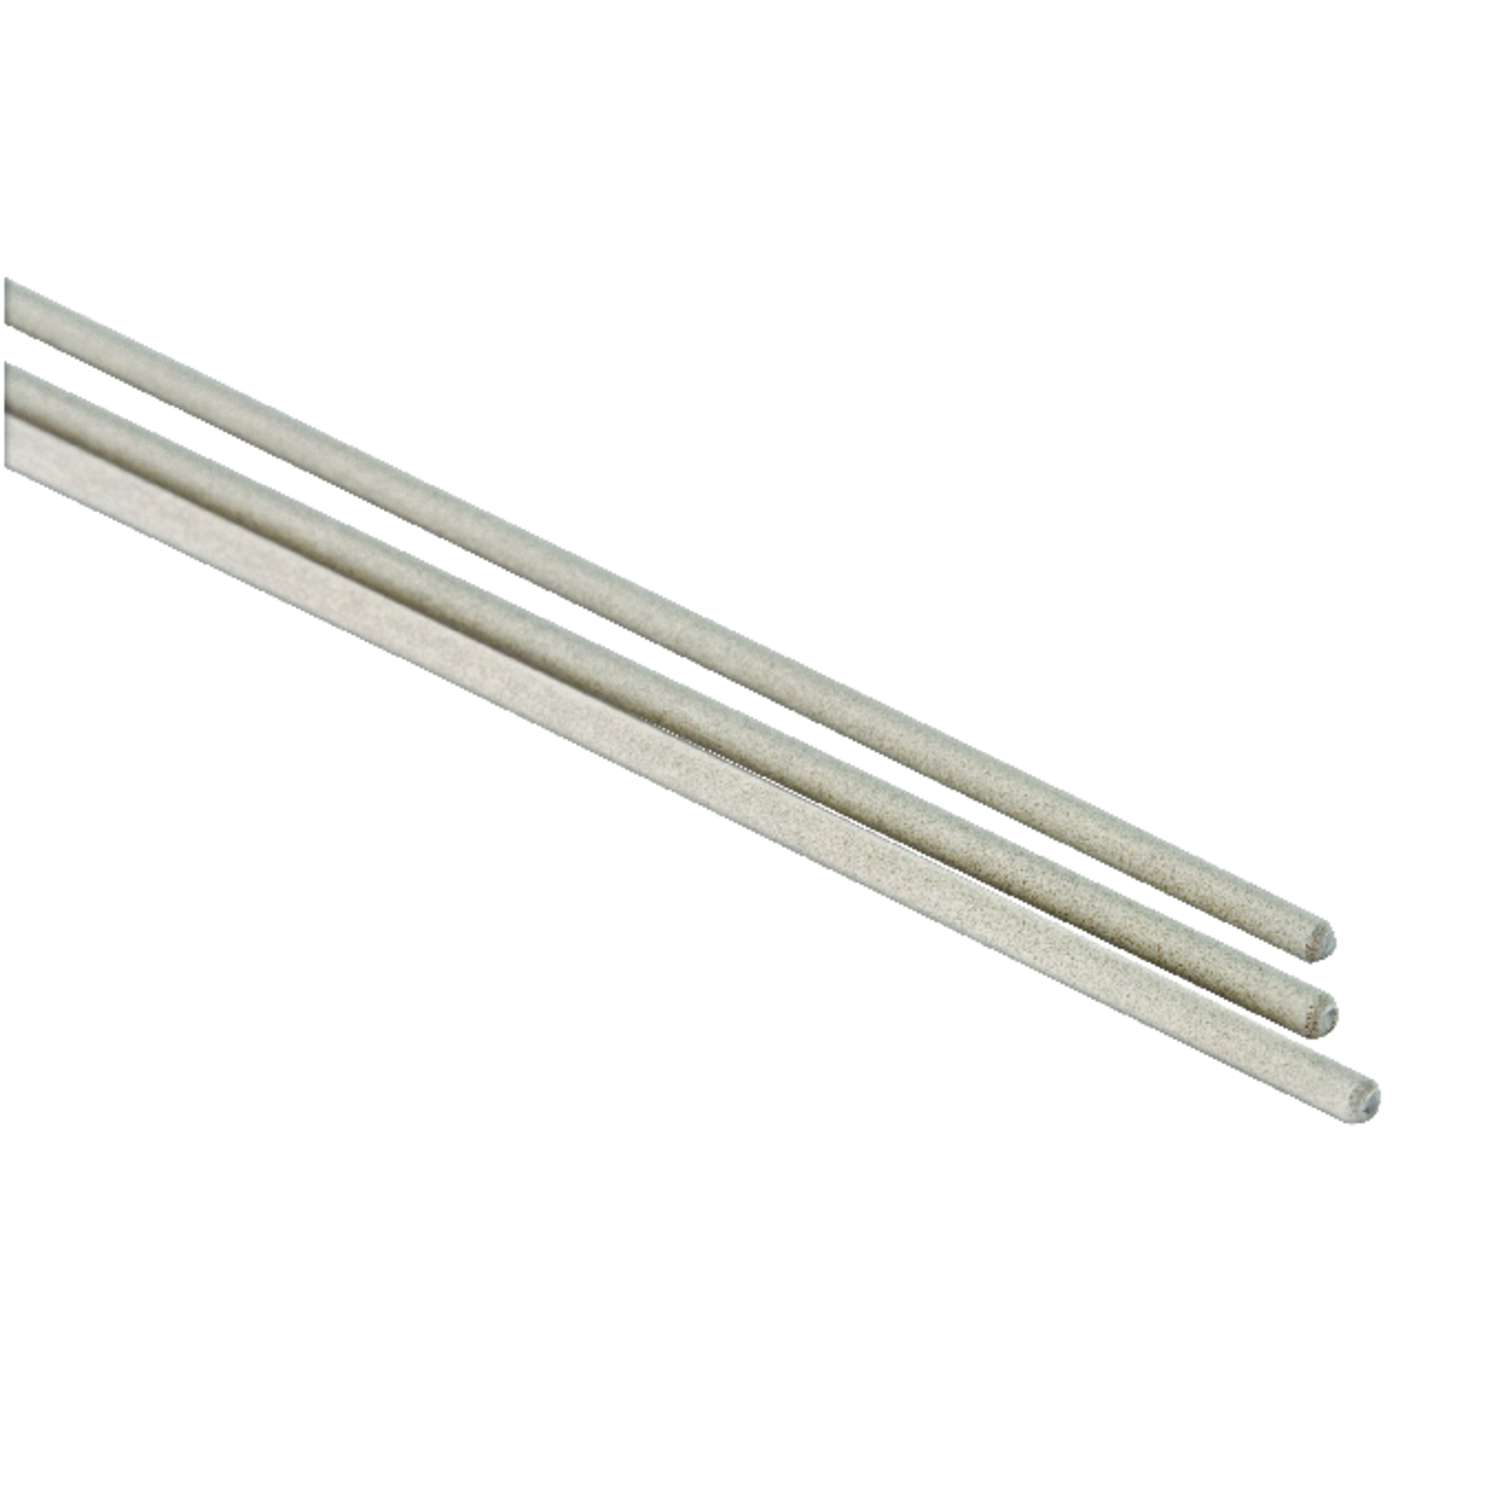 Forney  1/8 in. Dia. x 15.2 in. L E6013  Mild Steel  Welding Electrodes  1 lb. 1  83000 psi